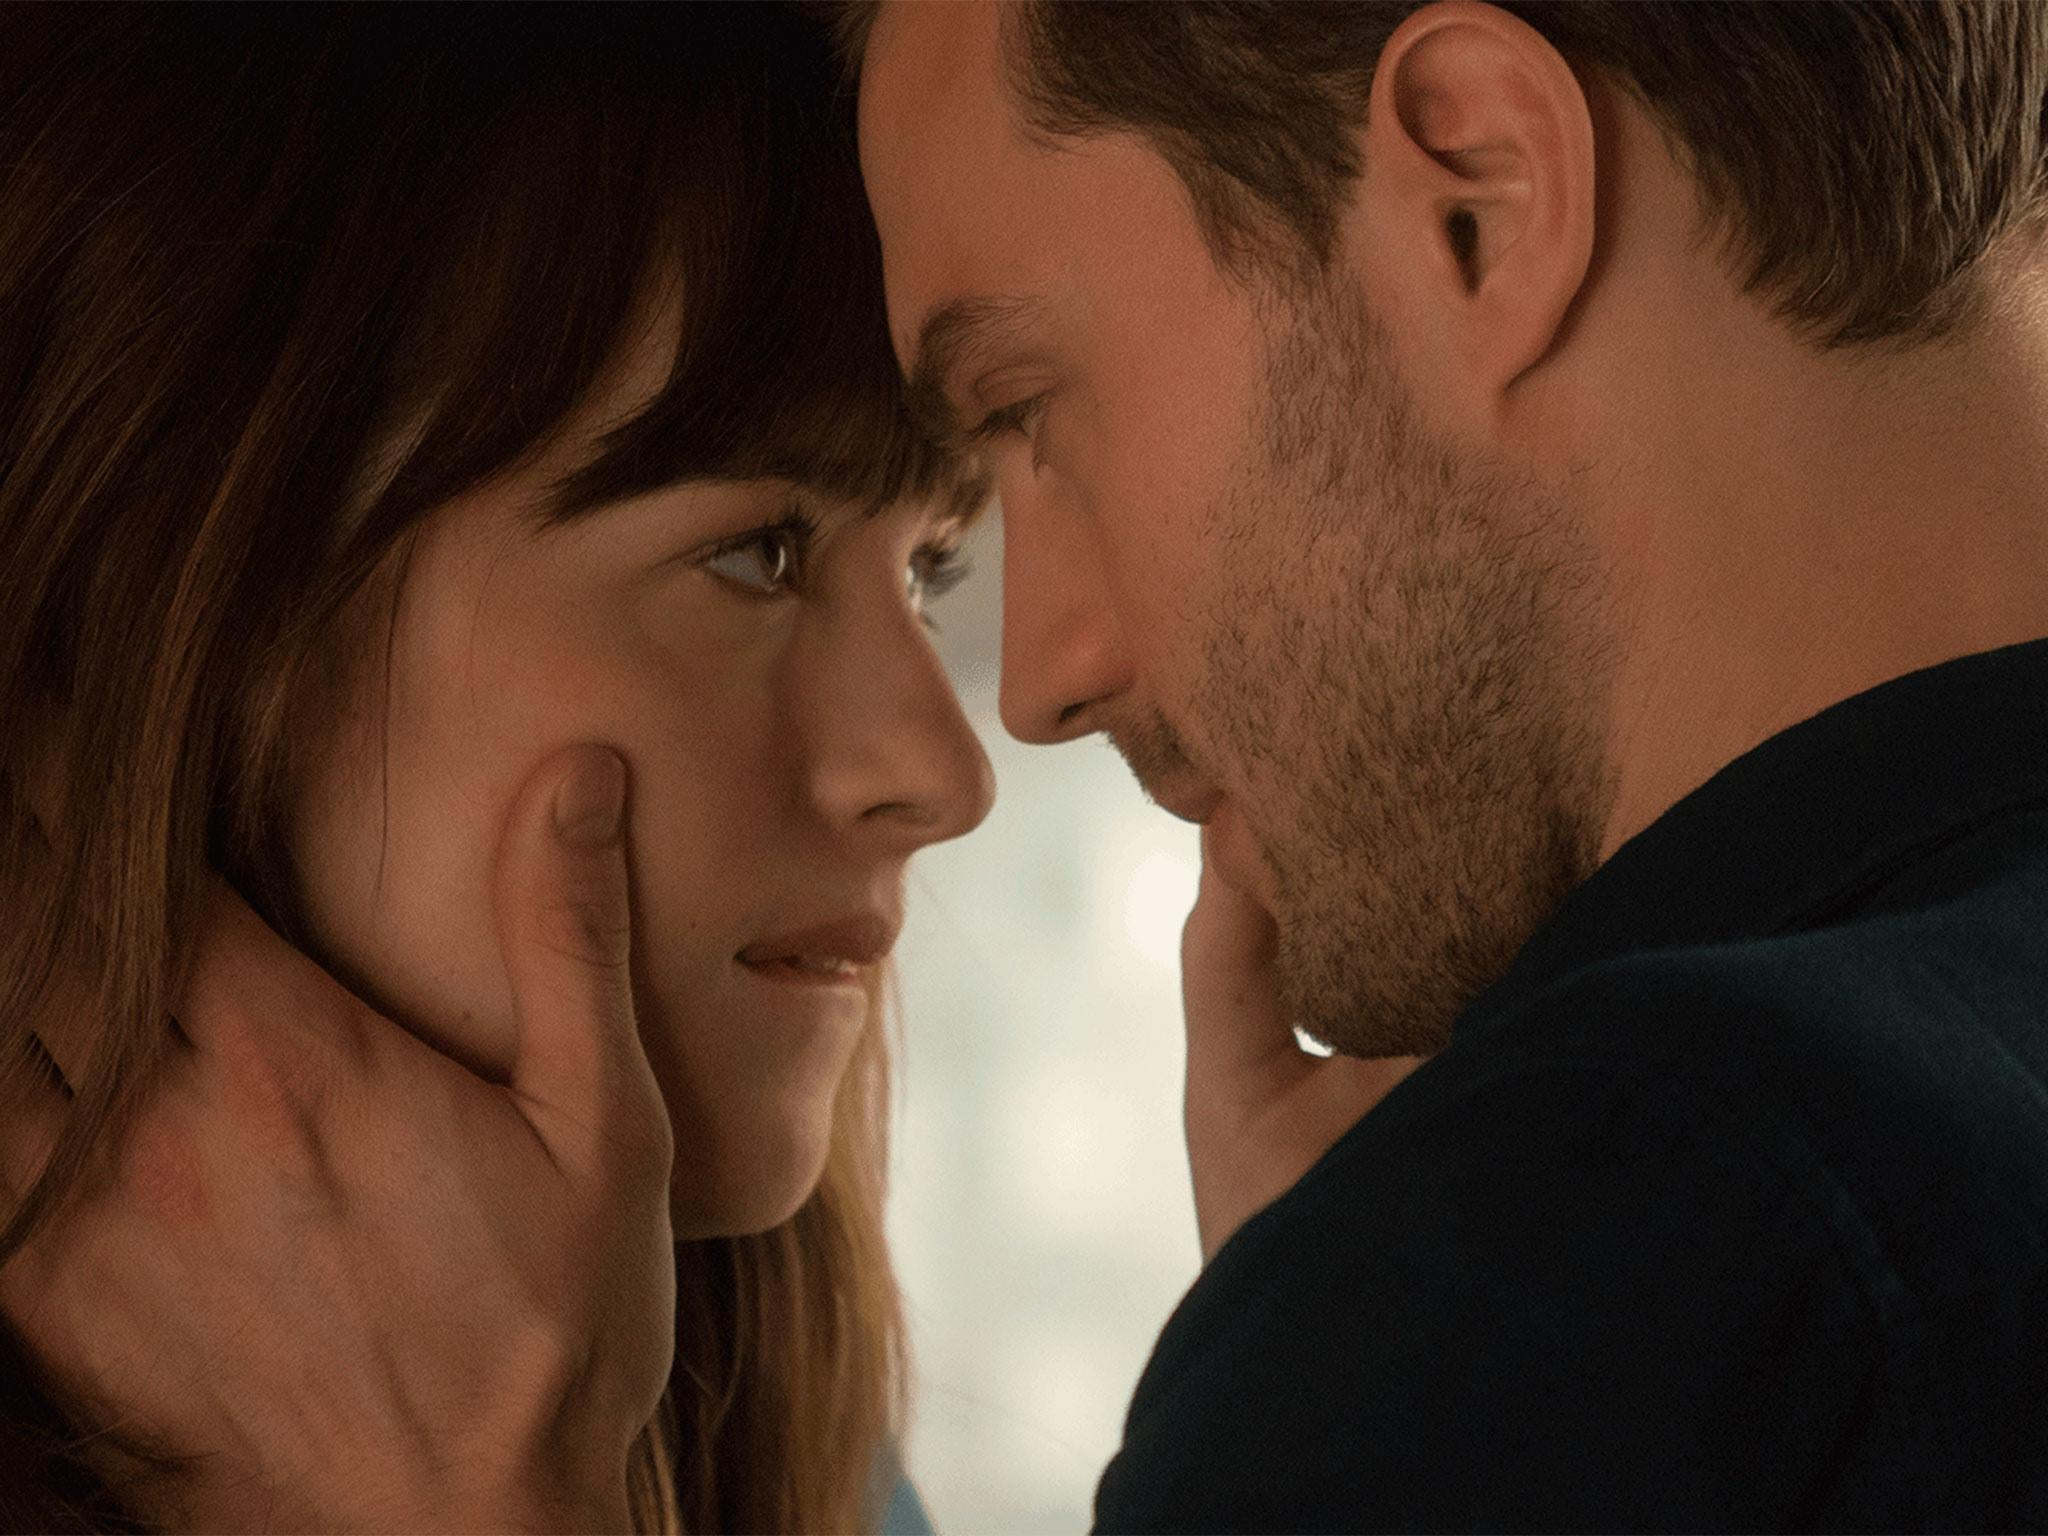 Fifty Shades Darker review       A vanilla romantic drama with a few mildly transgressive scenes        The Independent The Independent